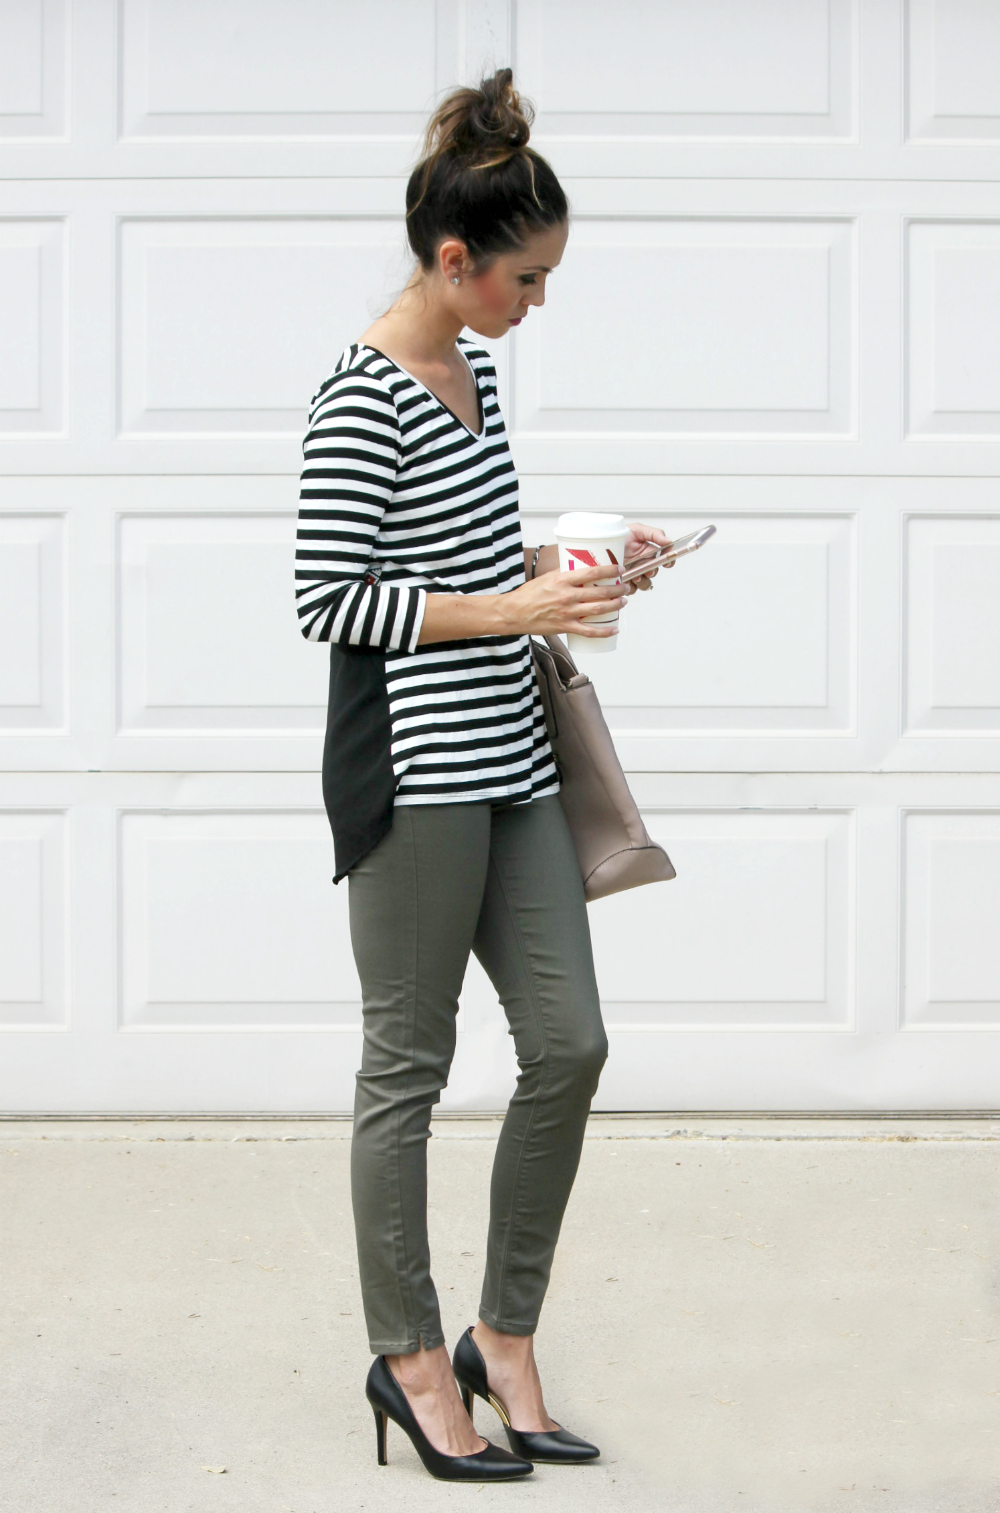 Office OOTD, work outfit ideas, olive green pants outfit, top knot, messy bun,